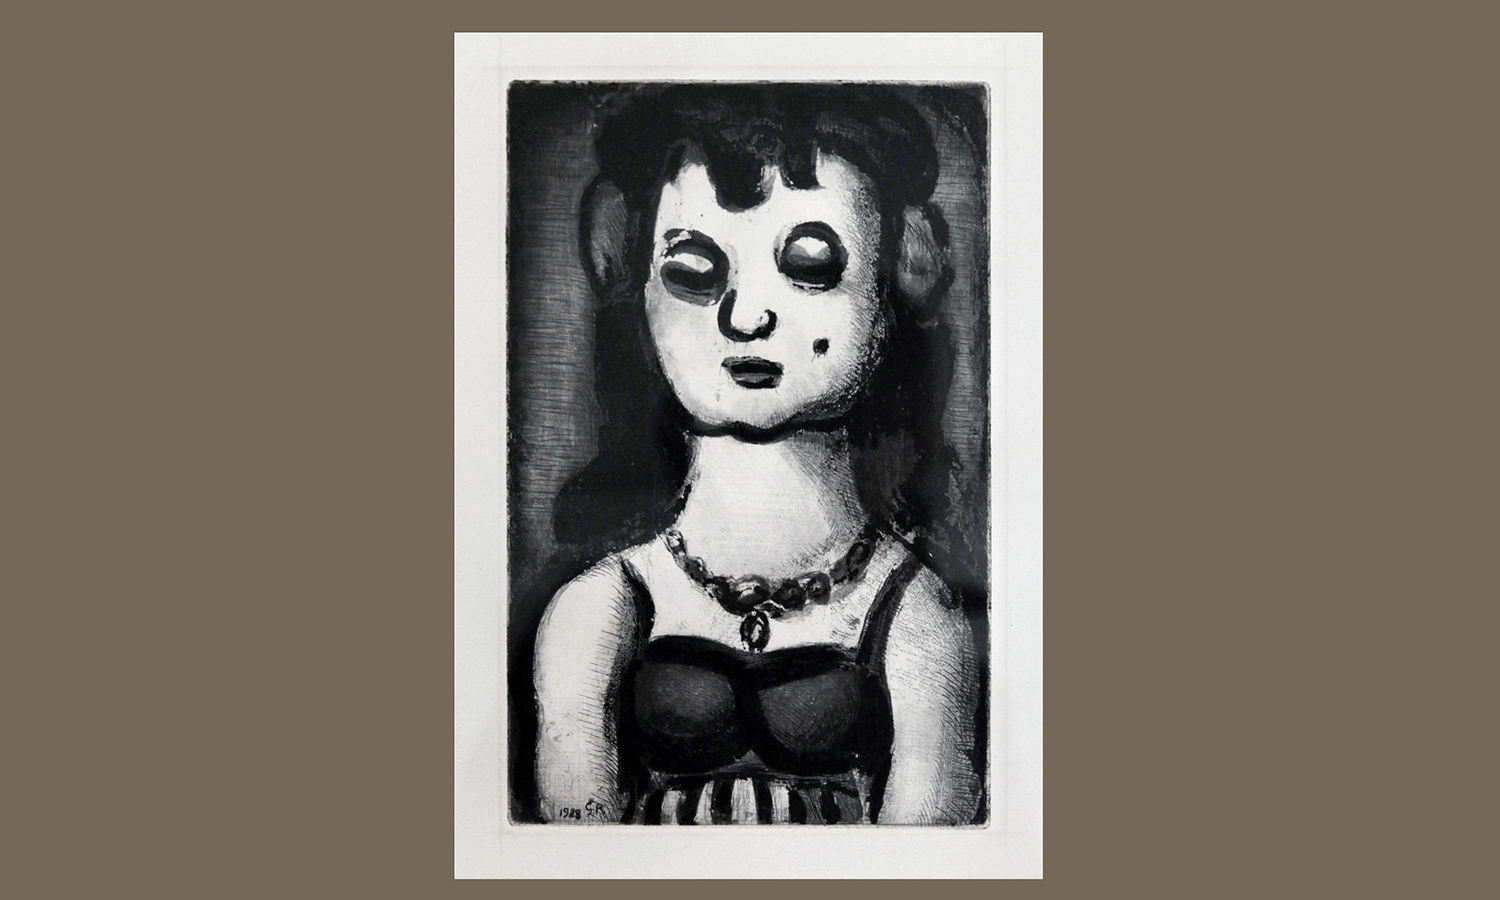 """Georges  Rouault  (1871-1958,  France)  Sainte-Nitouche,  1928.  From  Ambroise  Vollard,"" ""Réincarnations du Père Ubu. Aquatint on BFK Rives paper, 25 x 16 cm. Department of  Art""""and Architecture purchase. hws-r-73"""